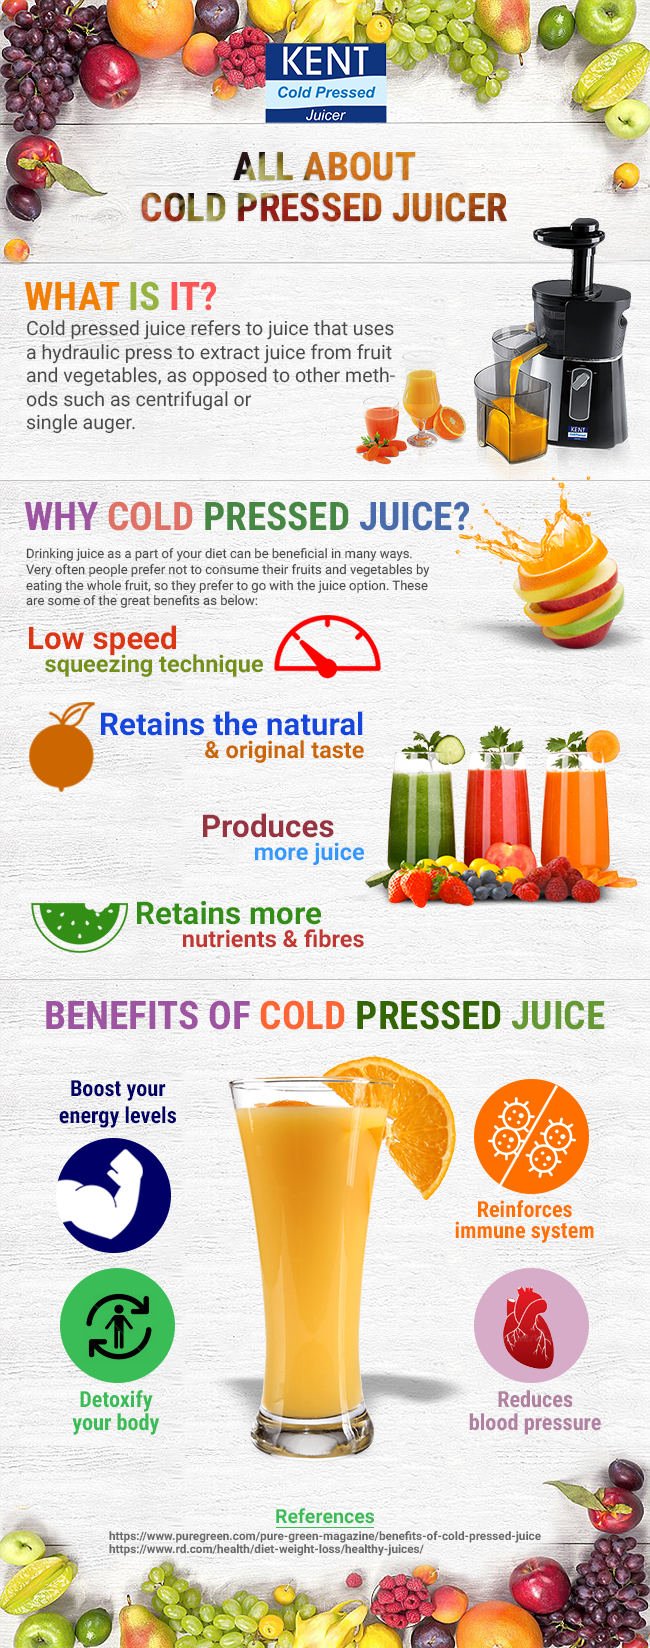 All About Cold pressed Juicer - Infographic